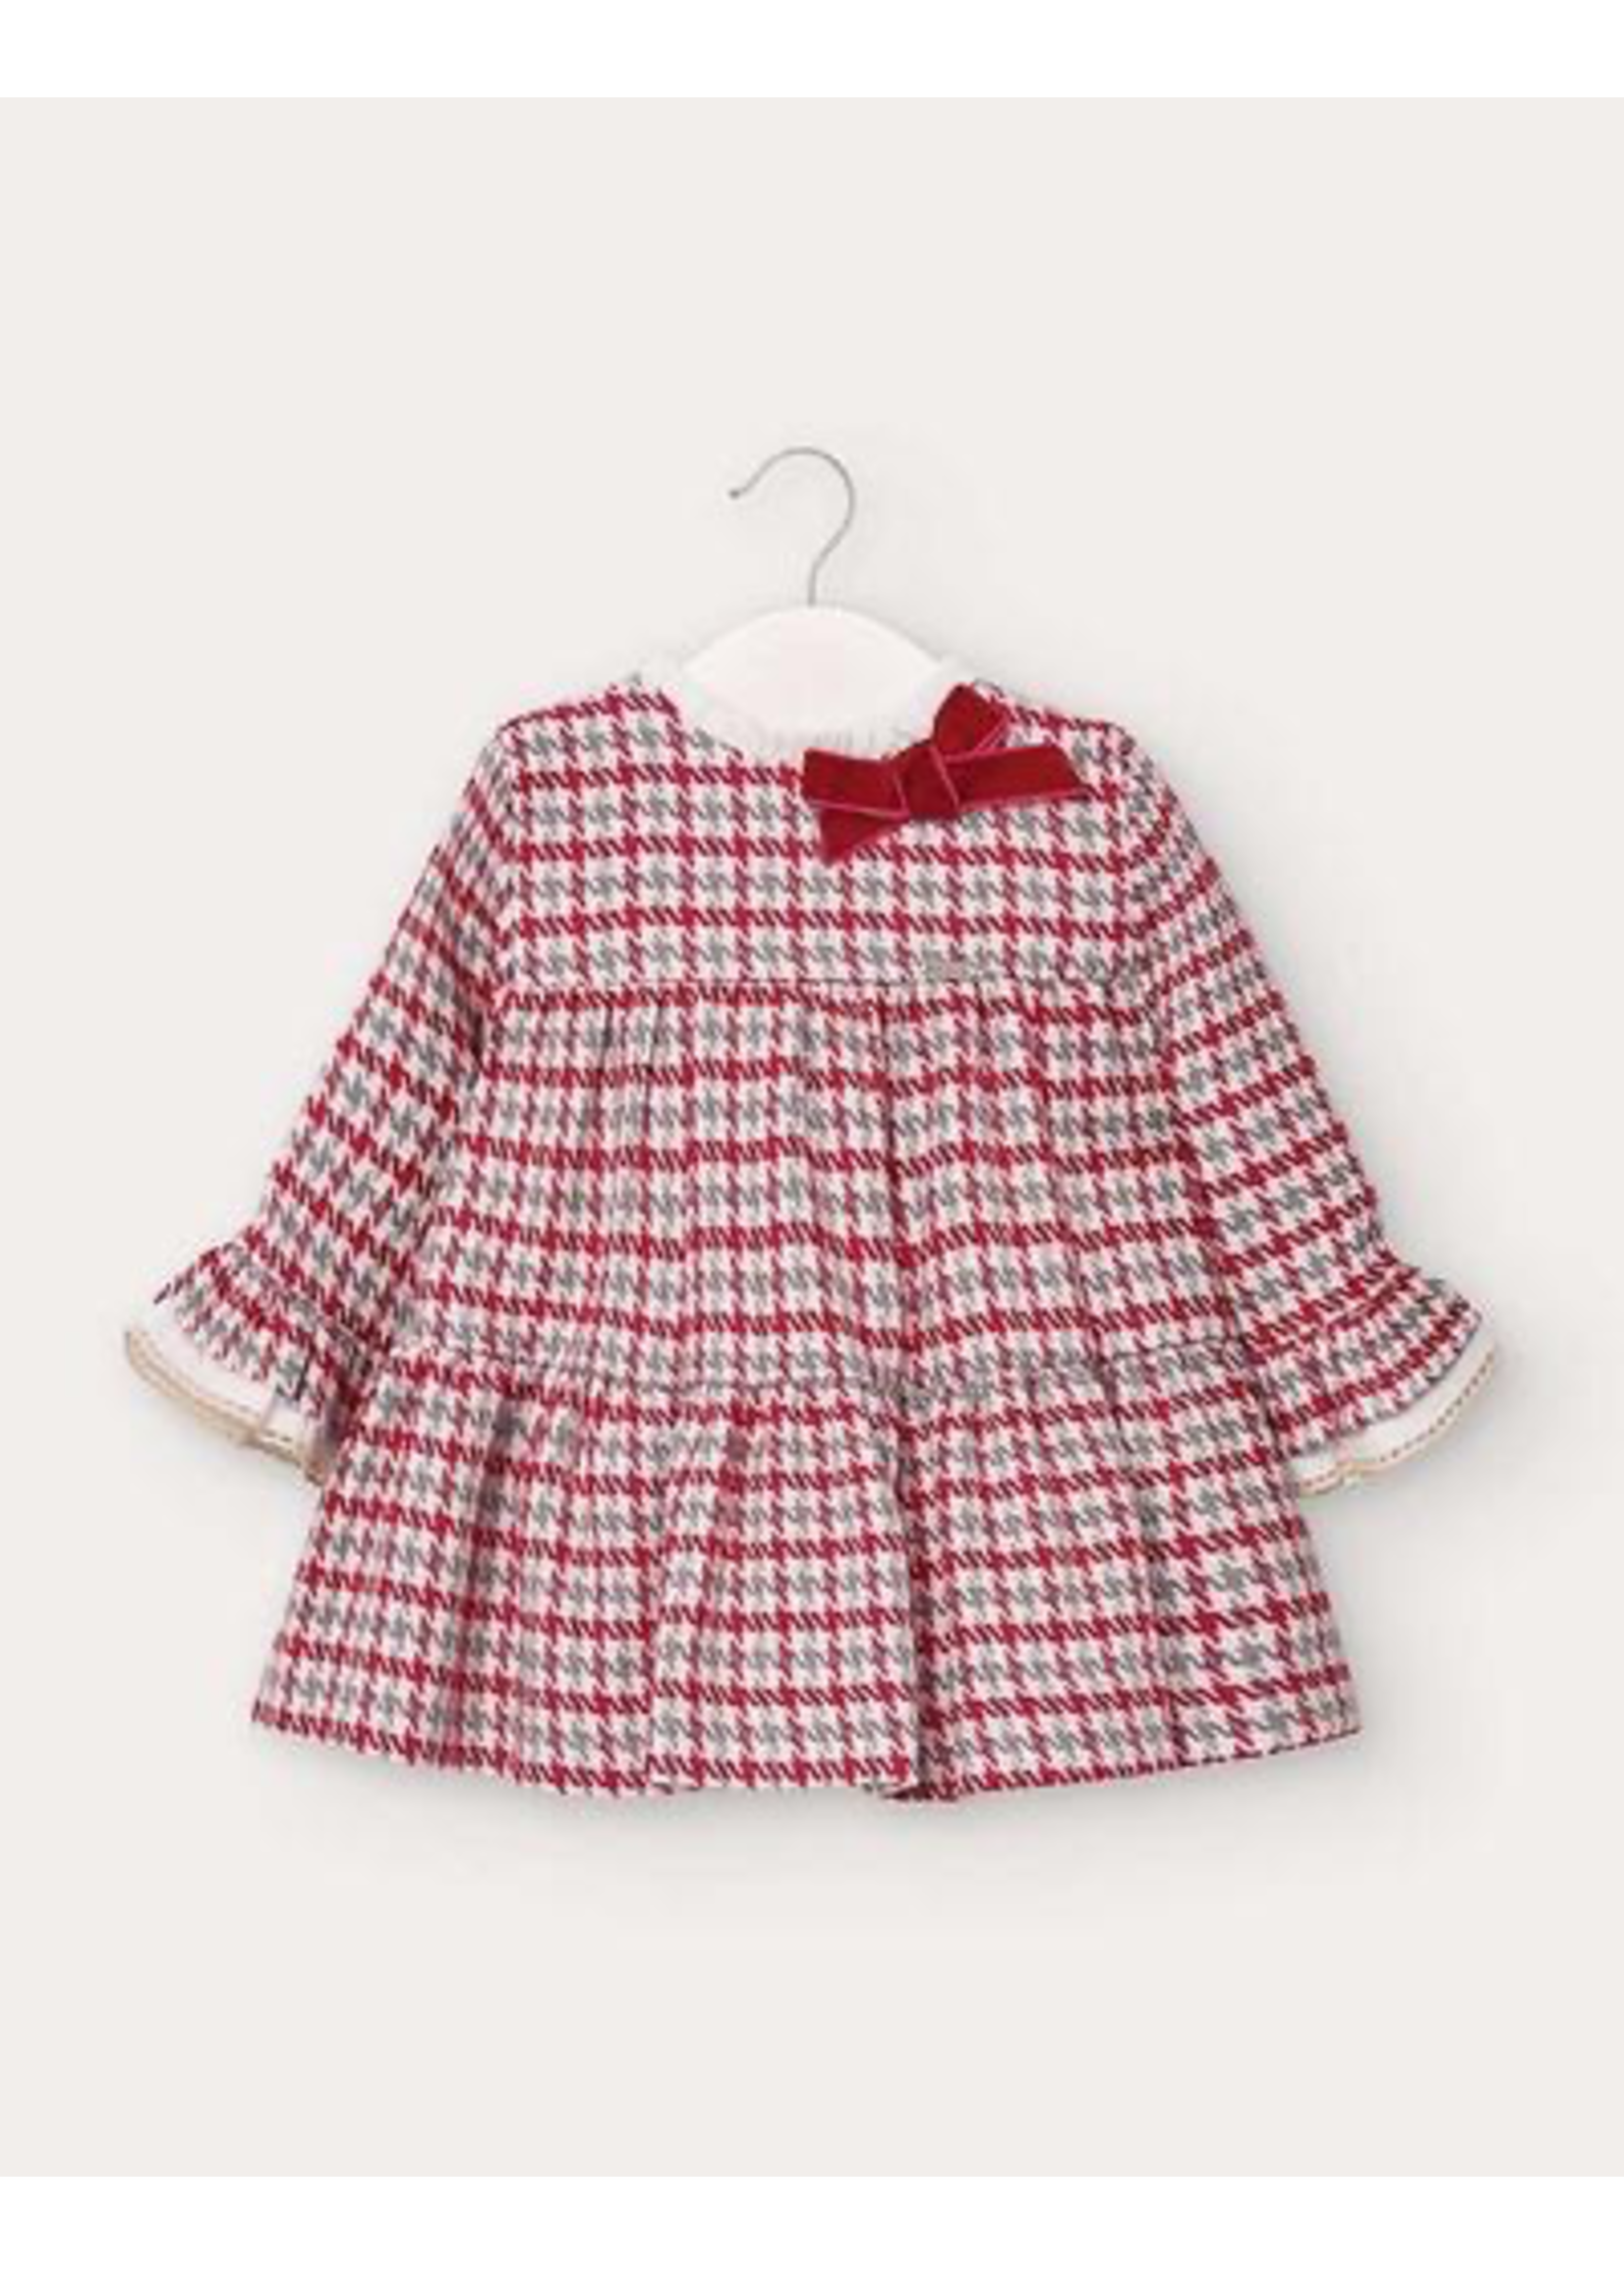 Mayoral Mayoral, Houndstooth Baby Girl Dress in Carmine